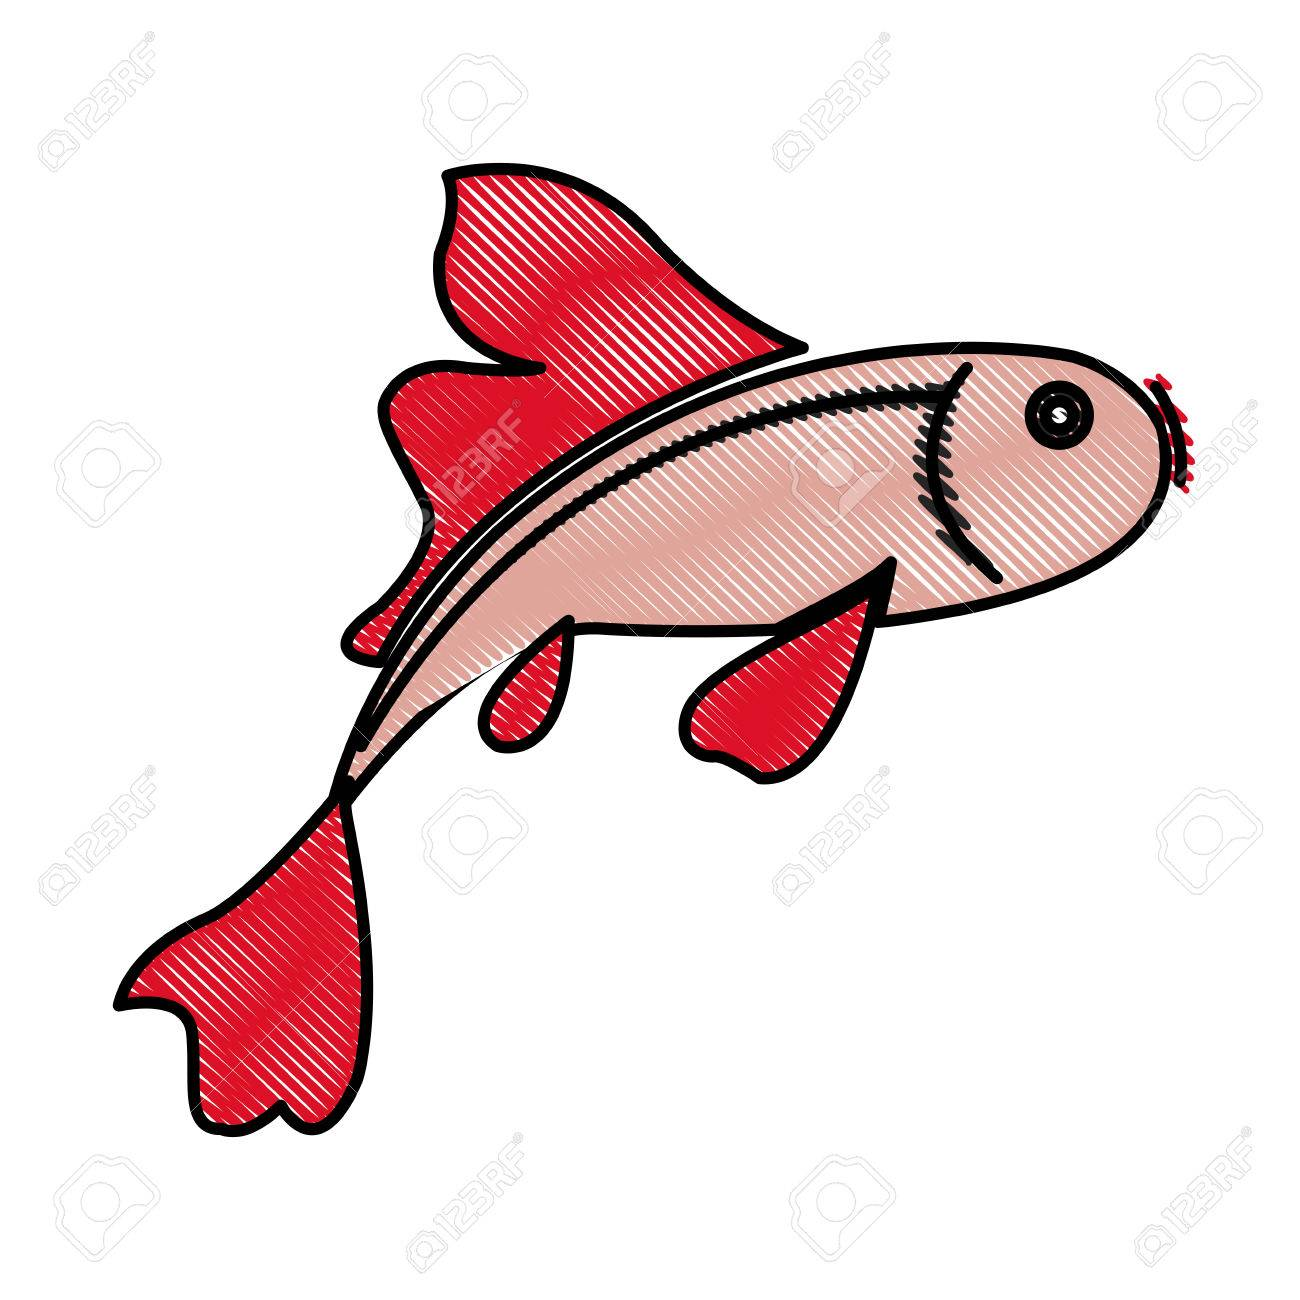 Asian Fish Drawing at GetDrawings.com | Free for personal use Asian ...